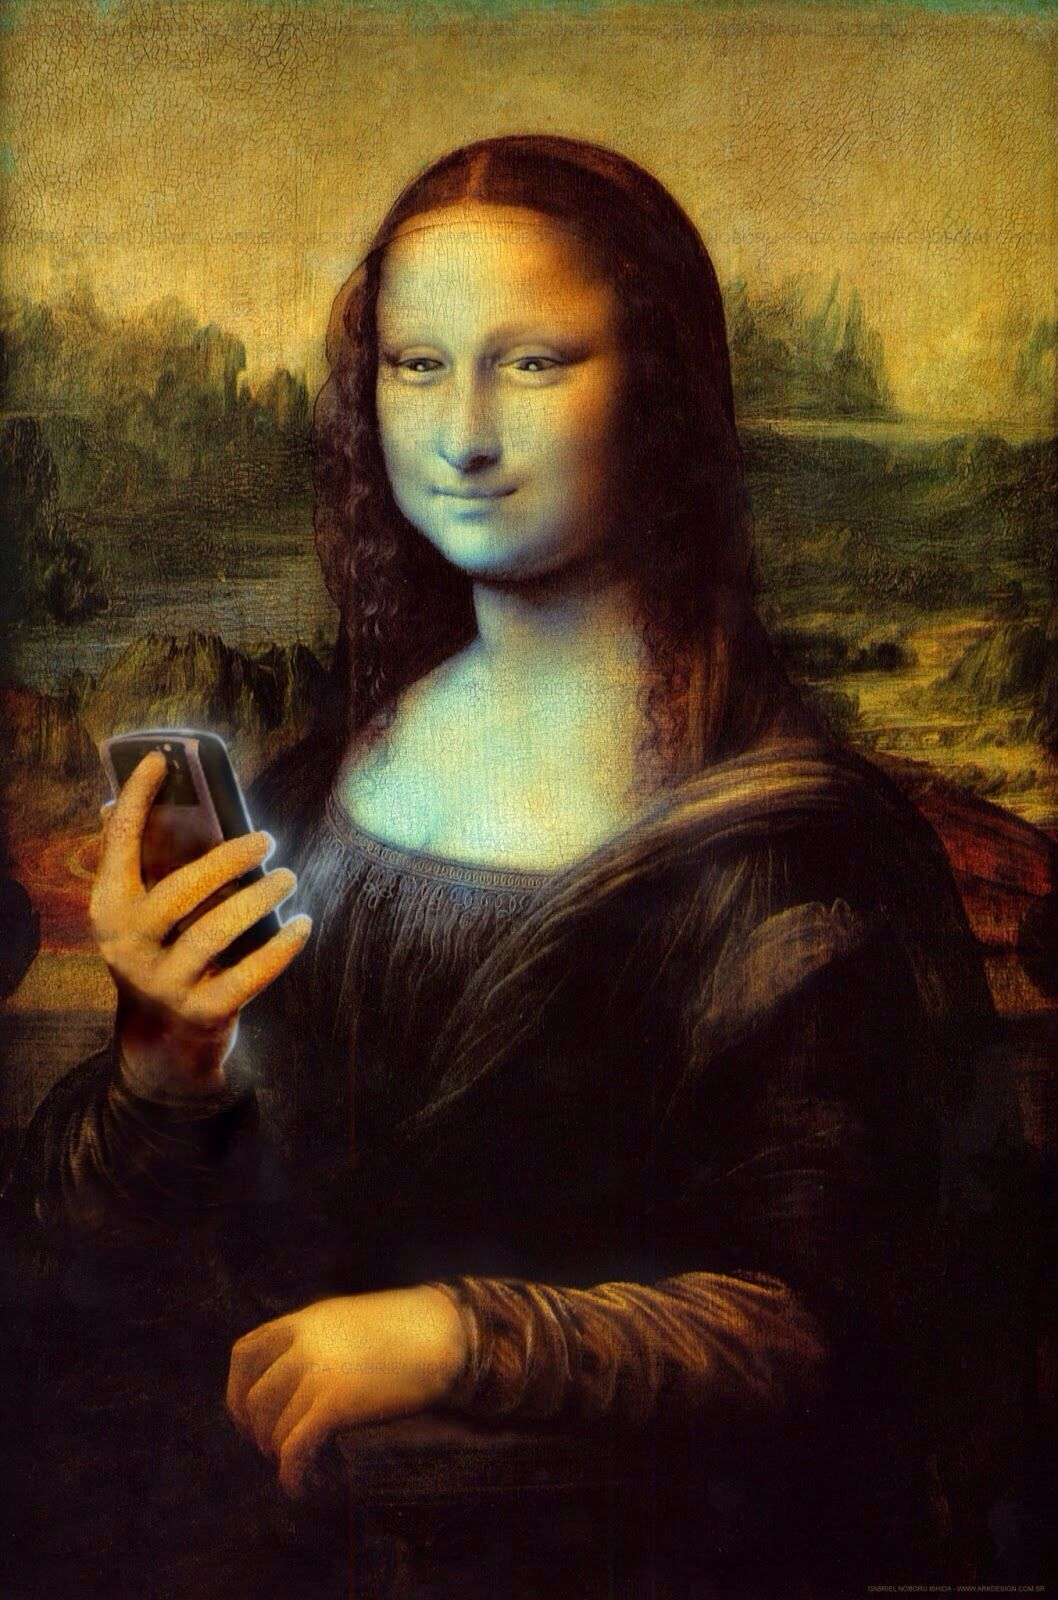 Mona Lisa with Cell Phone